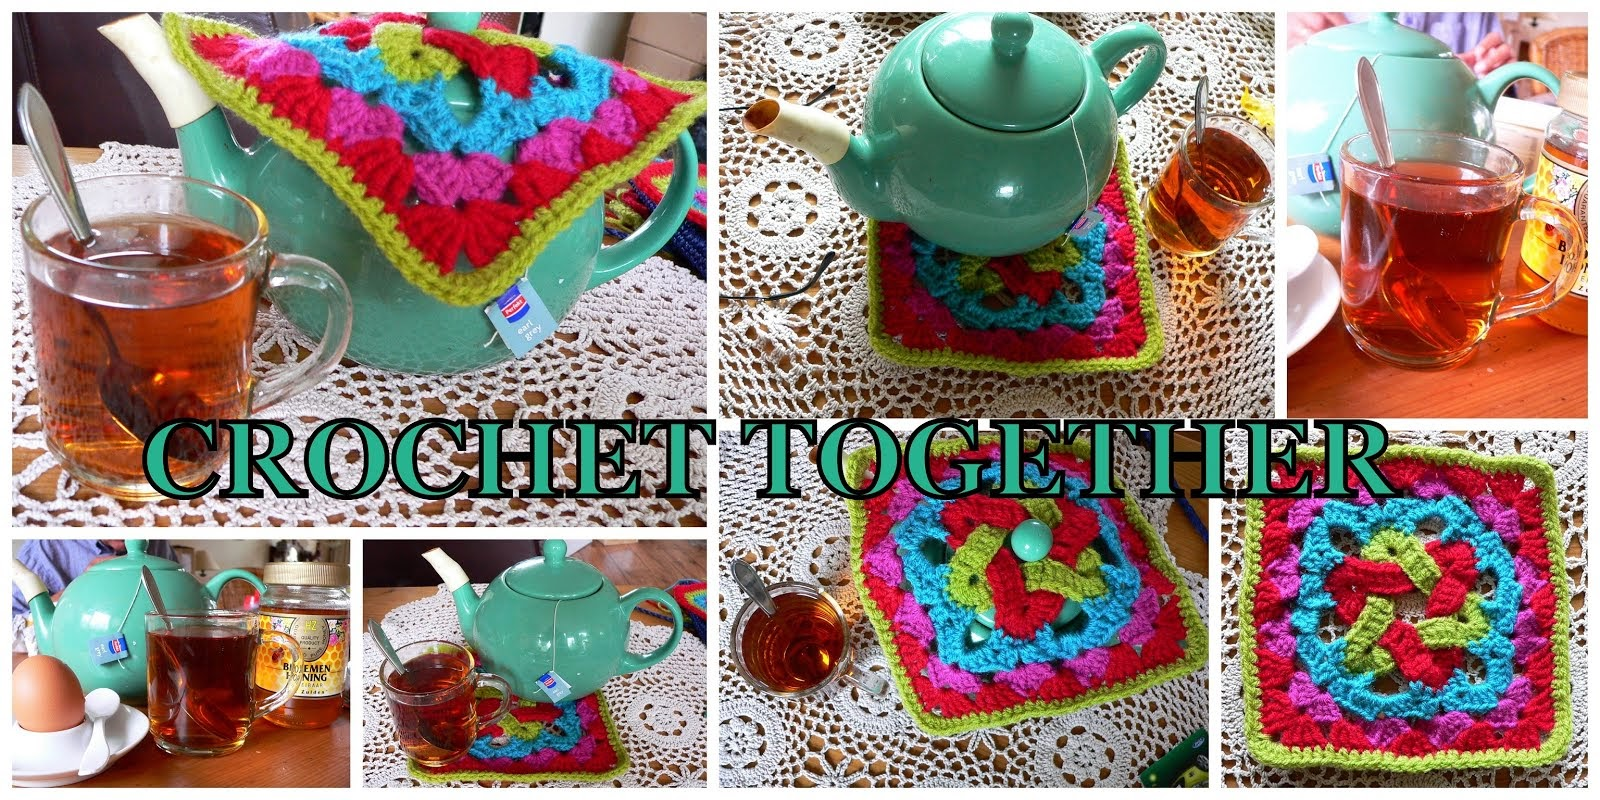 Crochet Together